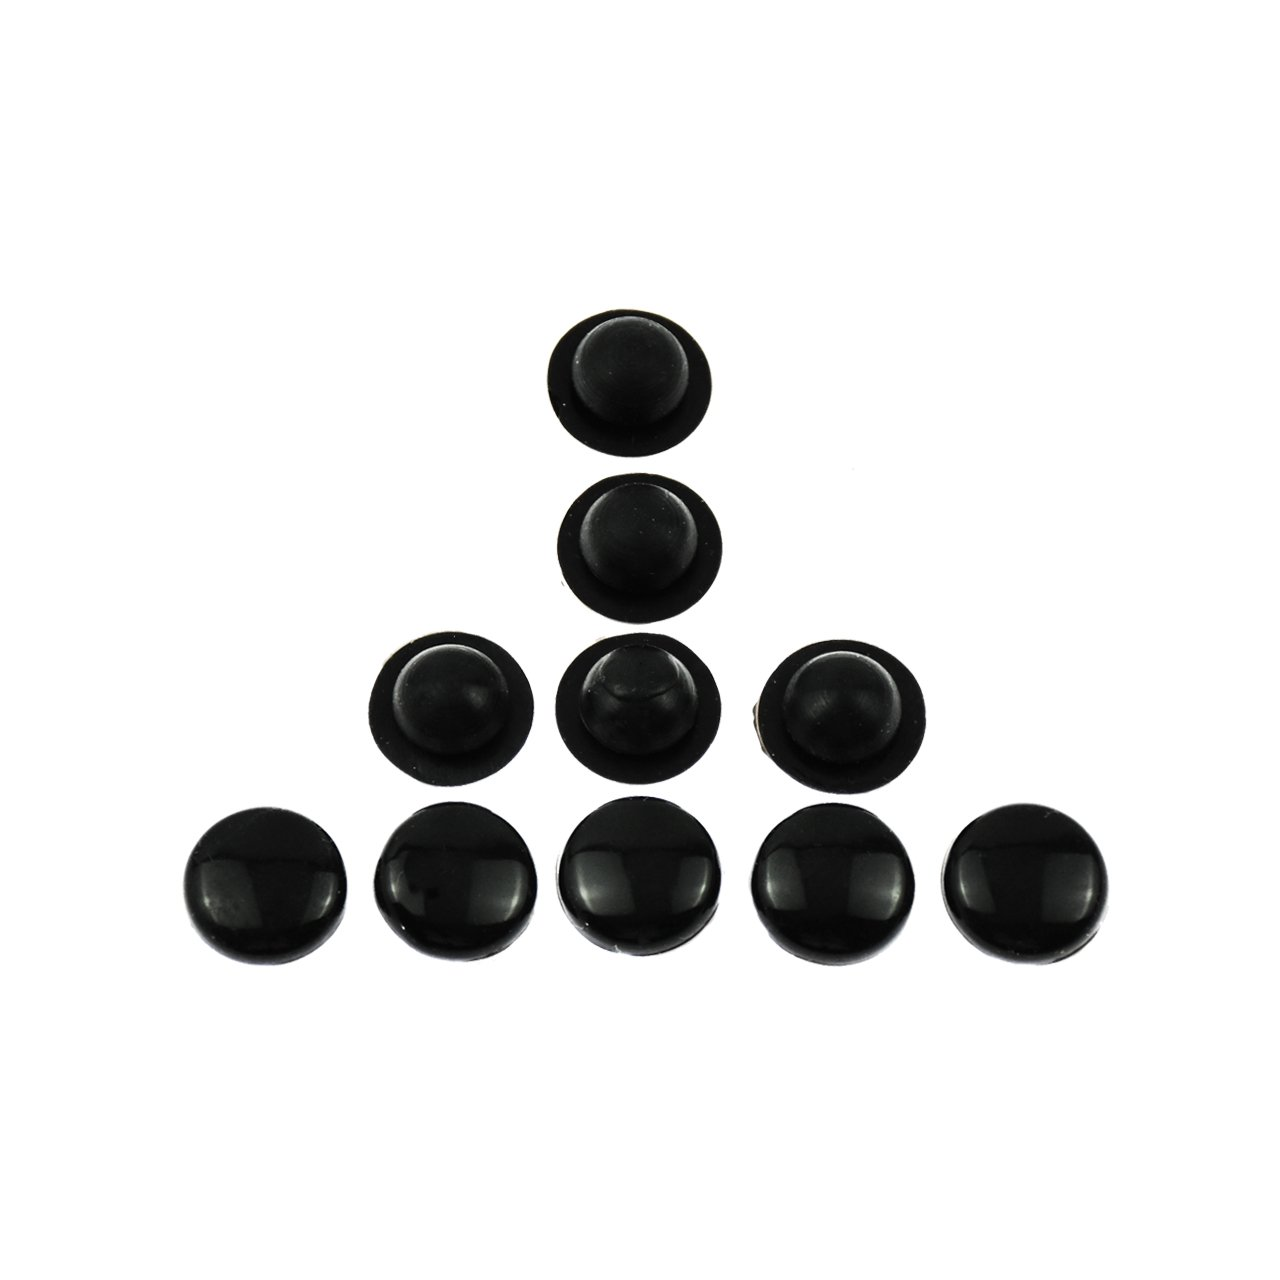 Rebacker 10 Pieces Gloss Black Rubber Pads for Harley Floorboard Foot Rest Footboards